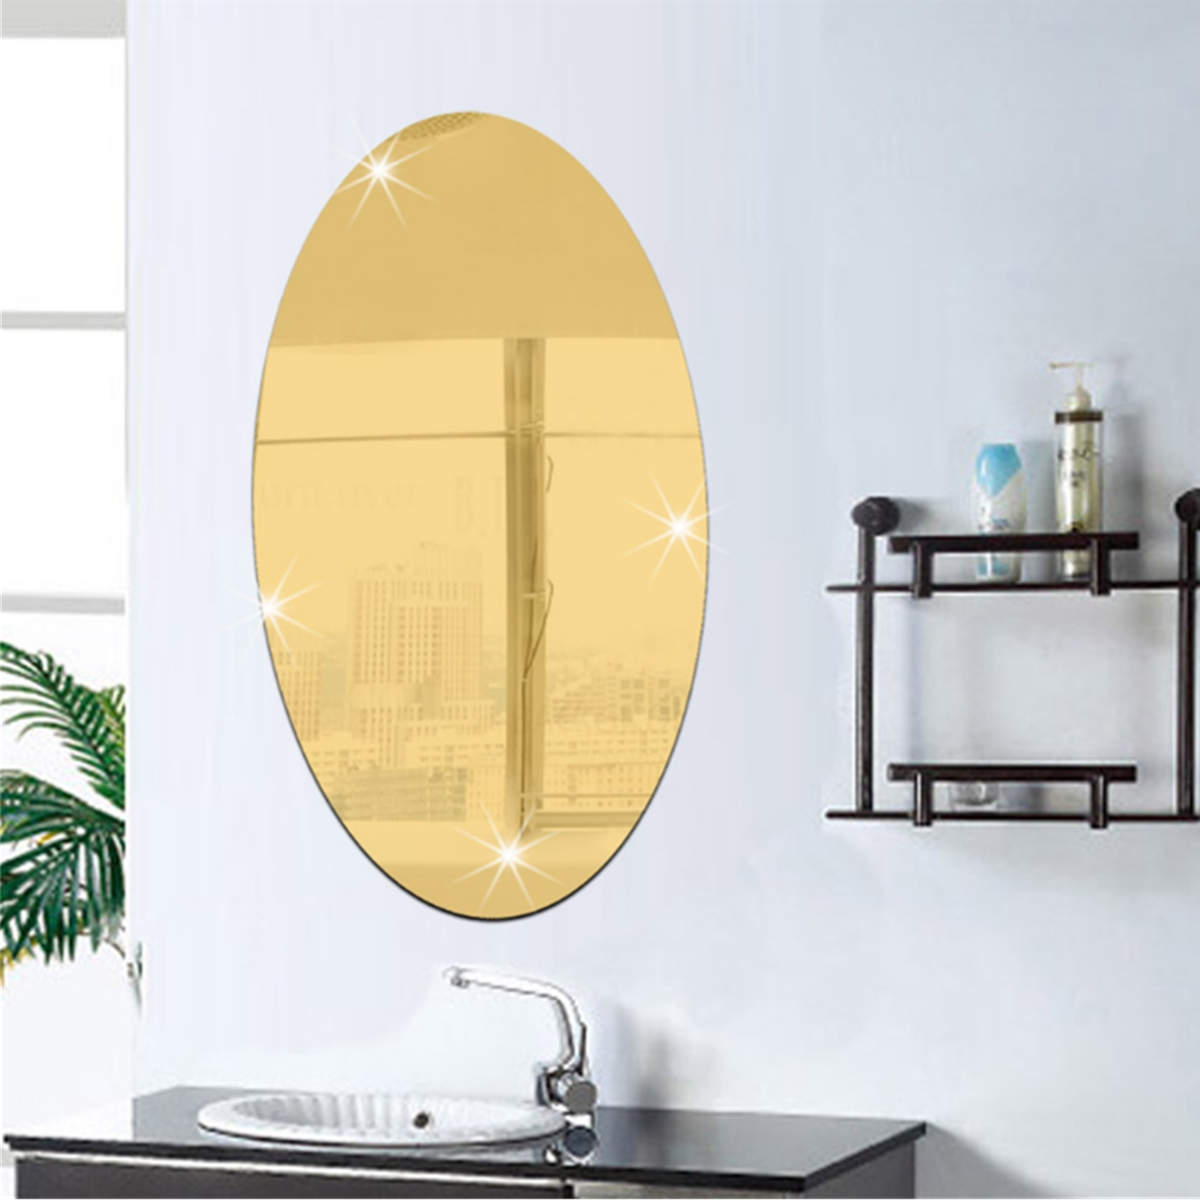 Buy crystal wall mirror and get free shipping on AliExpress.com